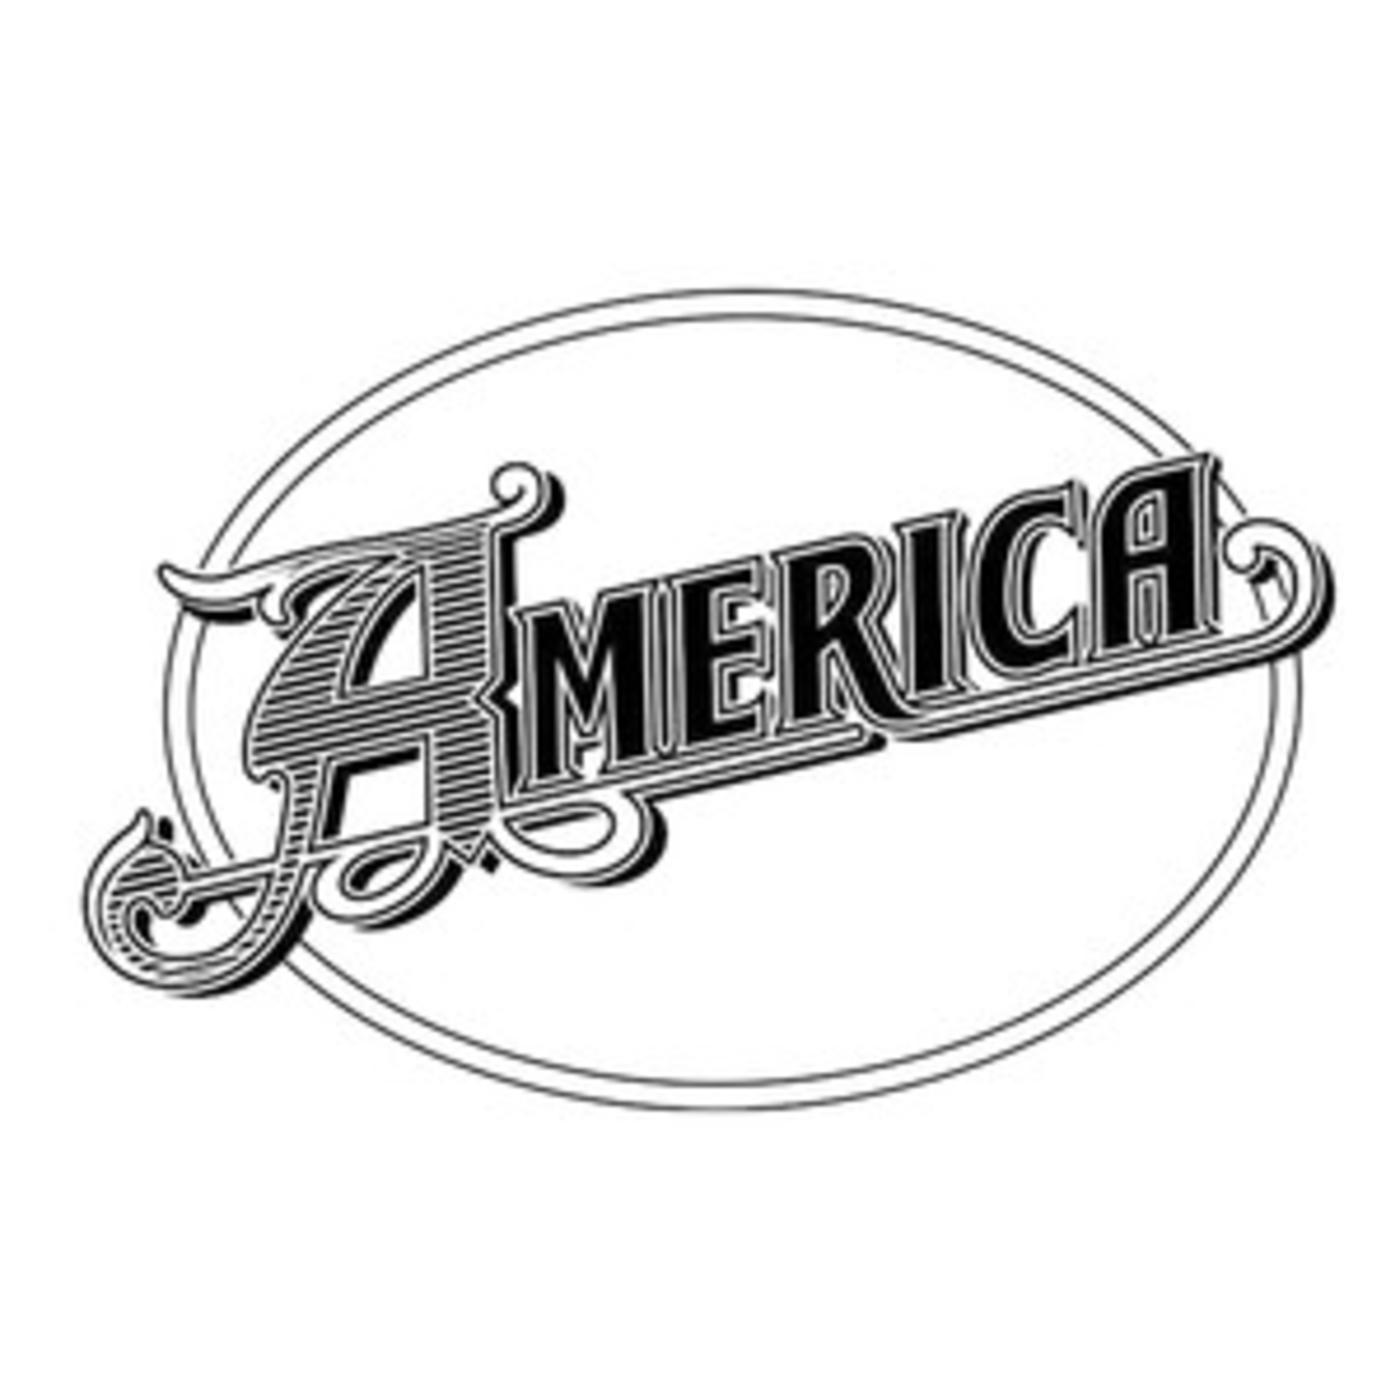 Official America playlist - A Horse With No Name, Ventura Highway, Sister Golden Hair, Lonely People